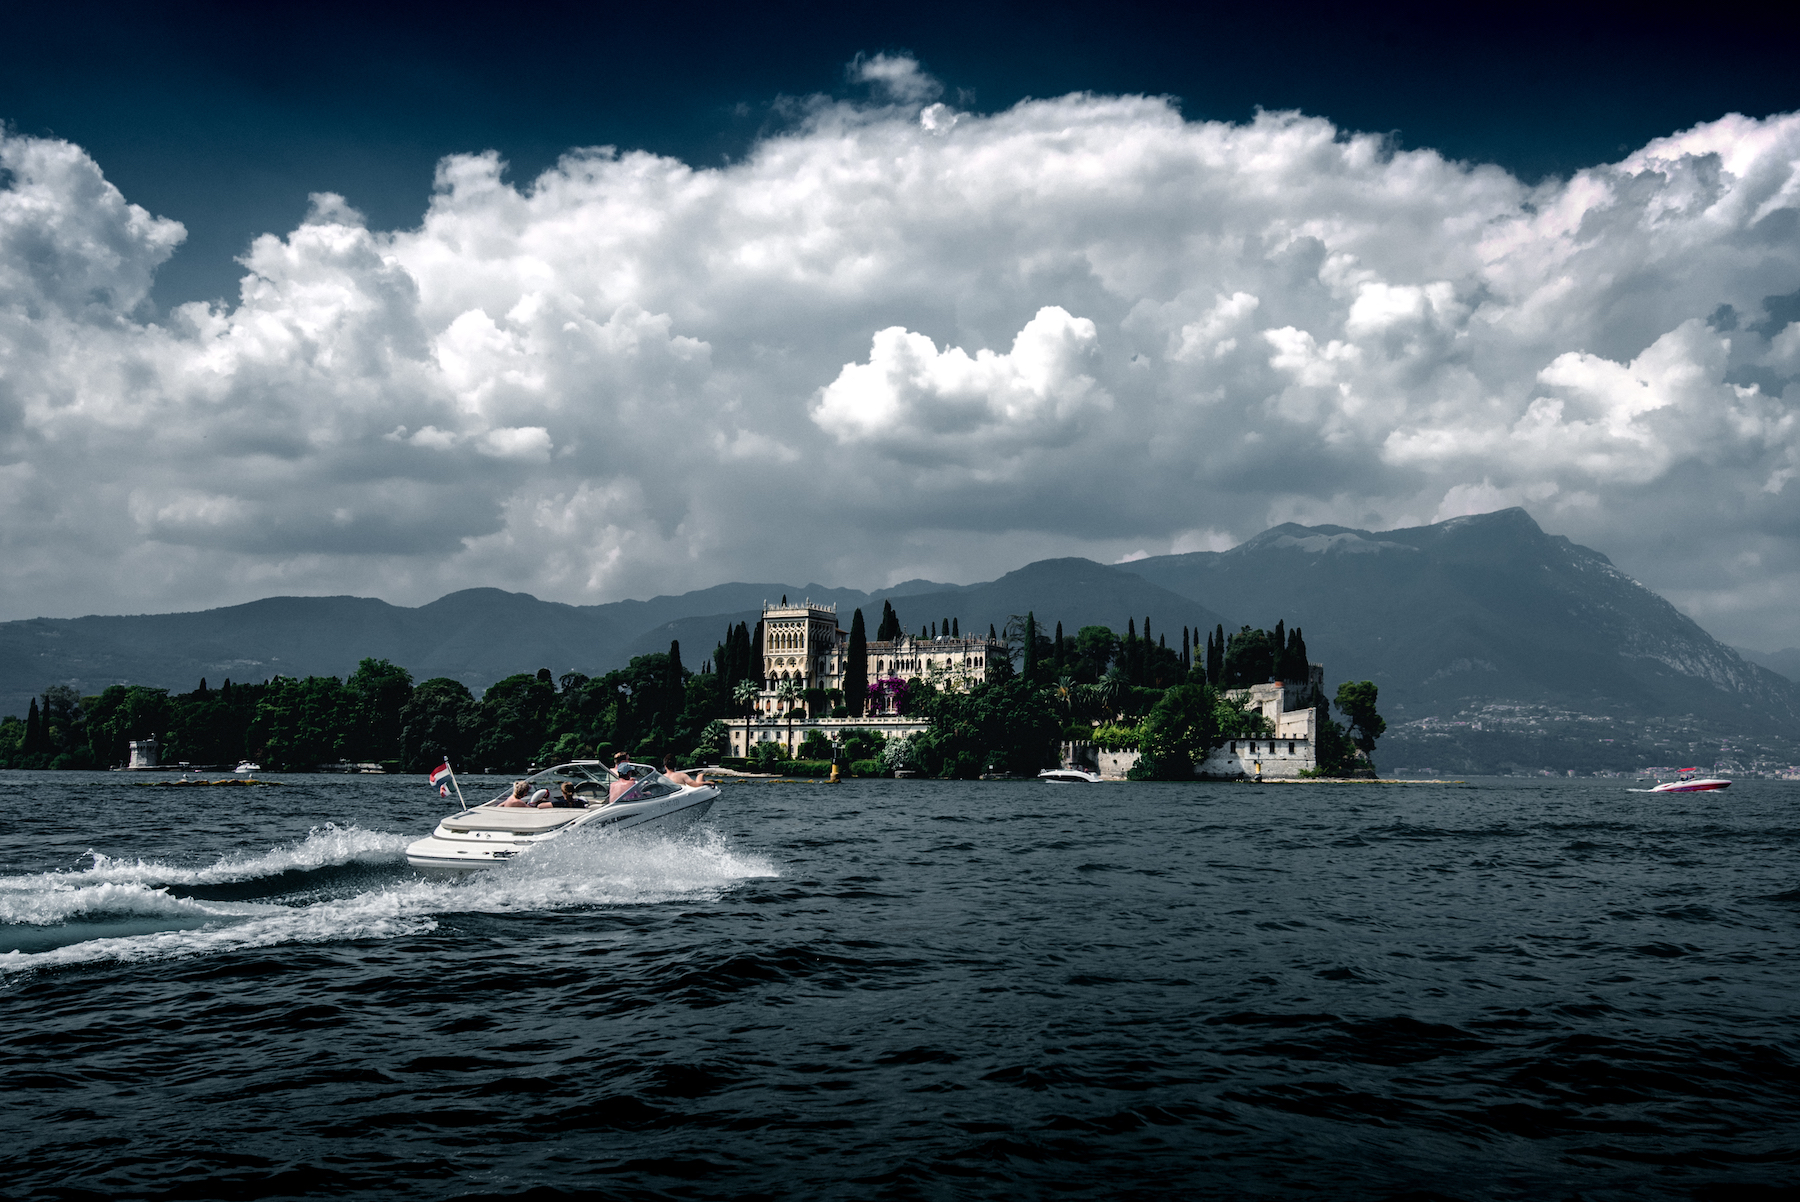 castle-on-garda-lake-italy-thomas-drouault-portfolio.jpg